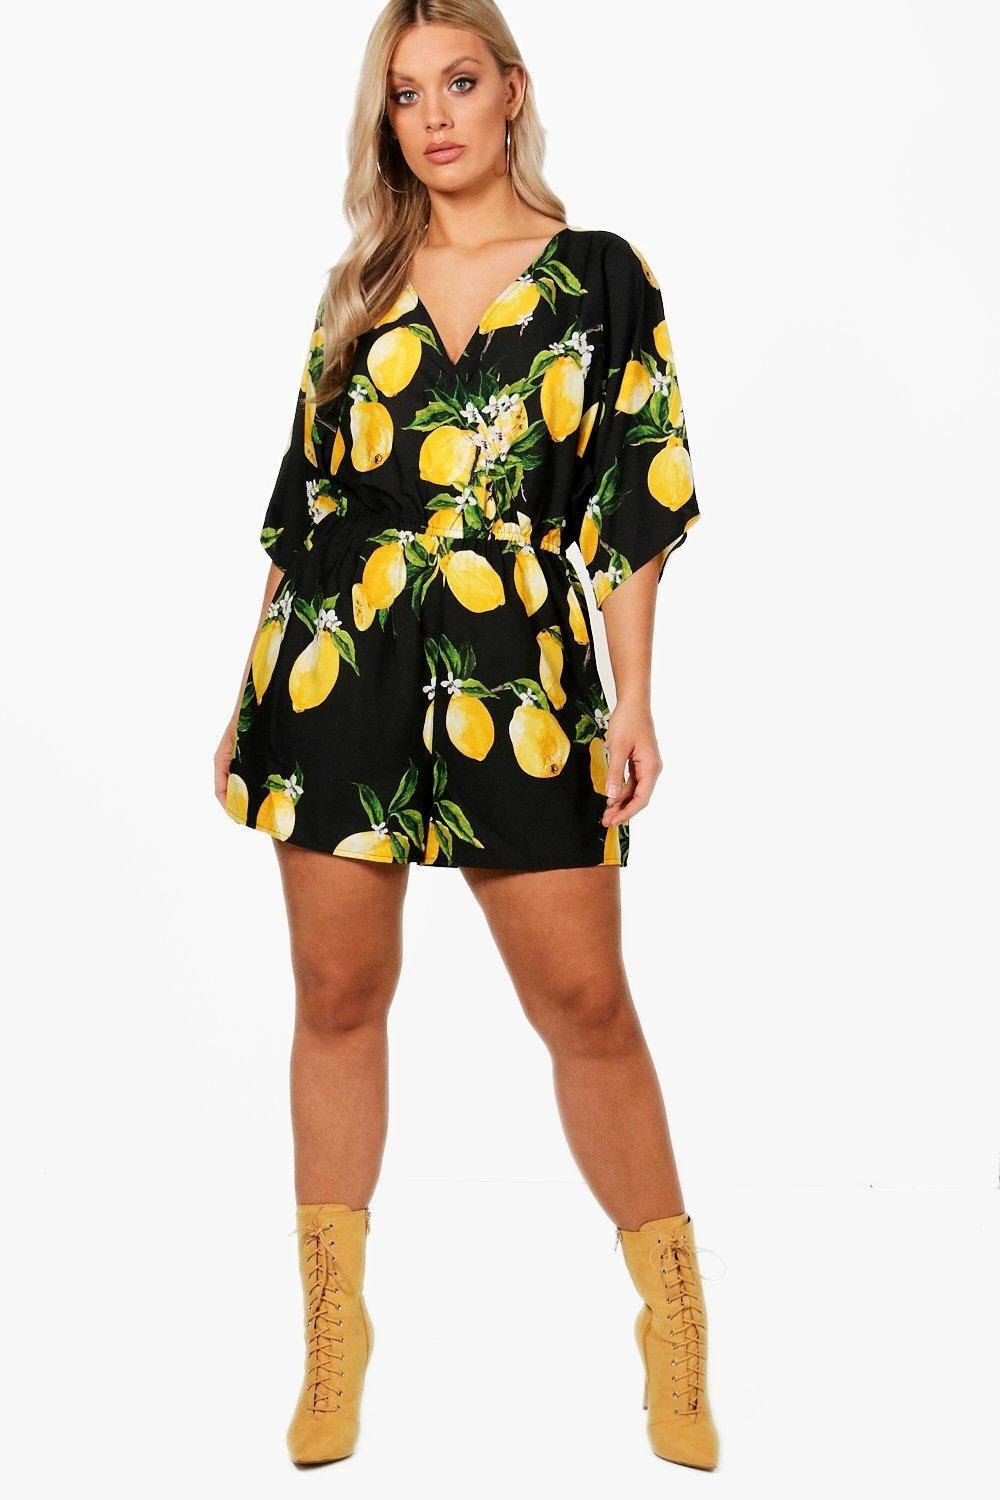 Price: $24 (originally $40, available in sizes 12–20)